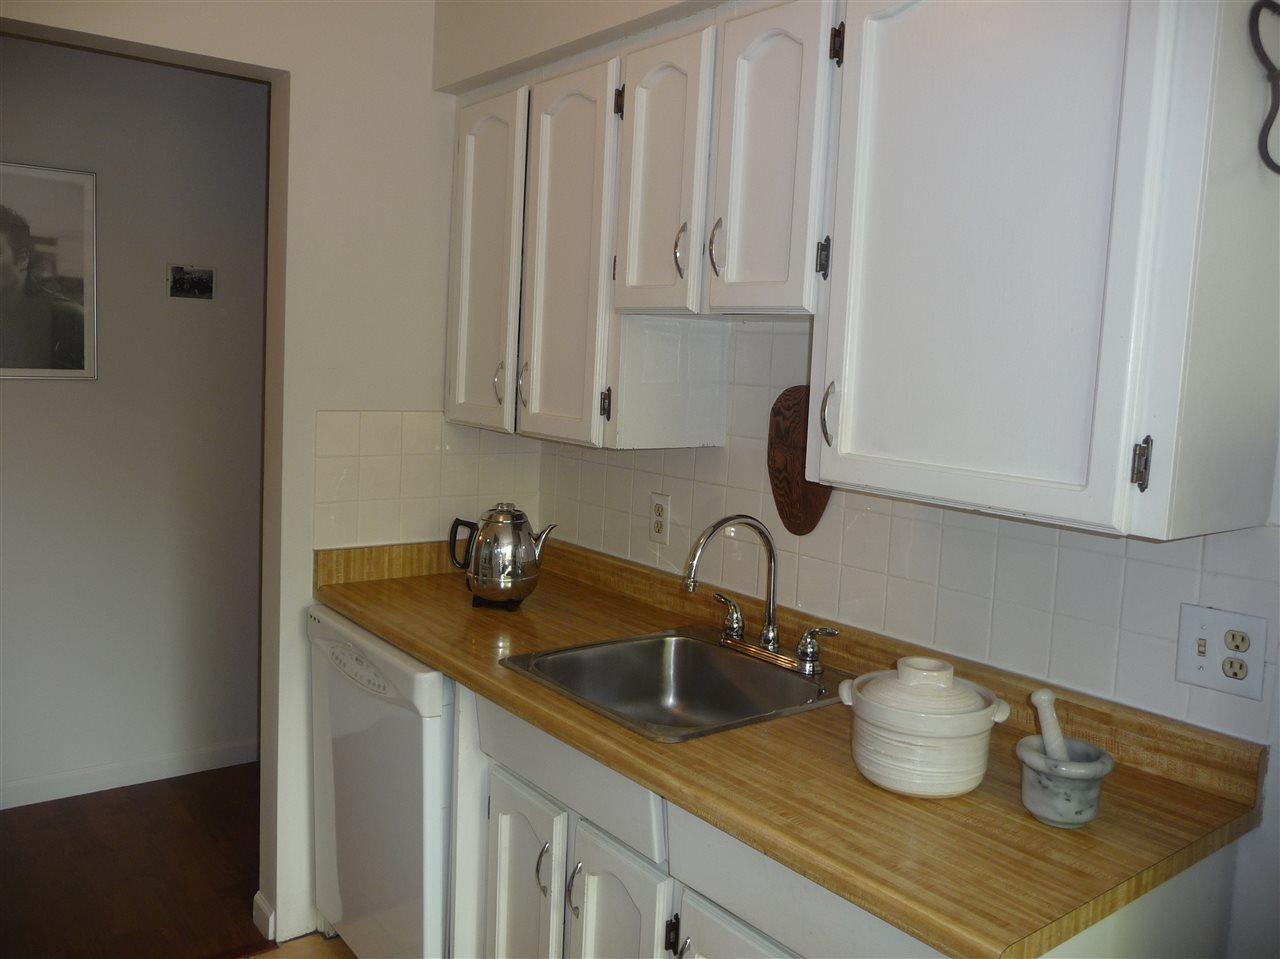 Photo 2: 103 2910 ONTARIO STREET in Vancouver: Mount Pleasant VE Condo for sale (Vancouver East)  : MLS® # R2058838